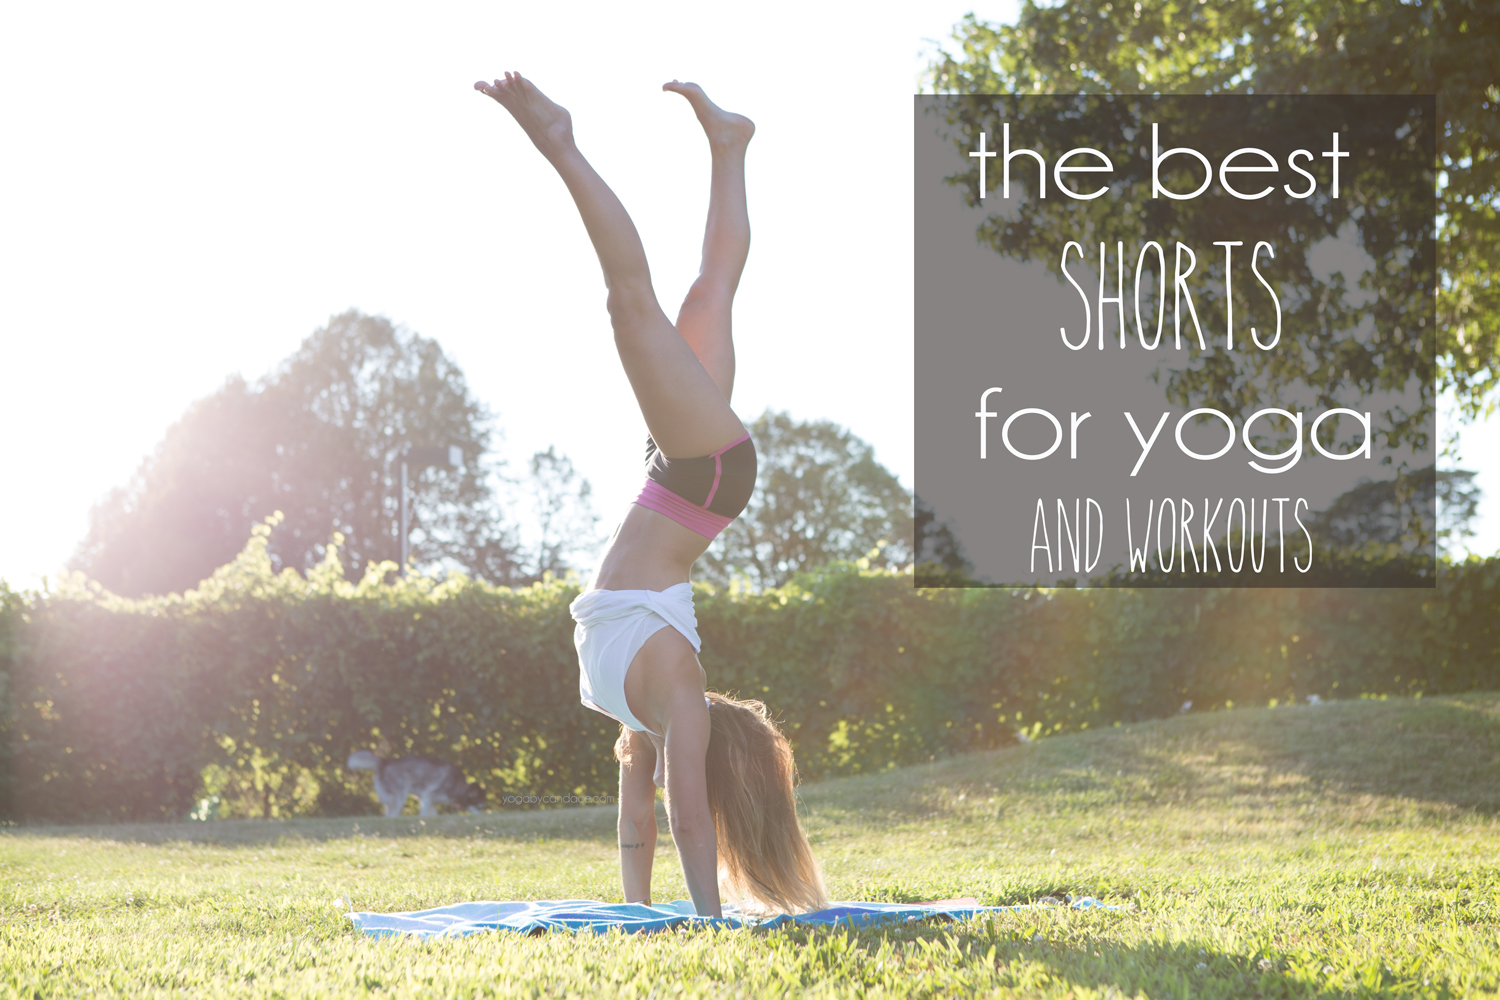 Pin now, read later! Best short shorts for yoga and workouts